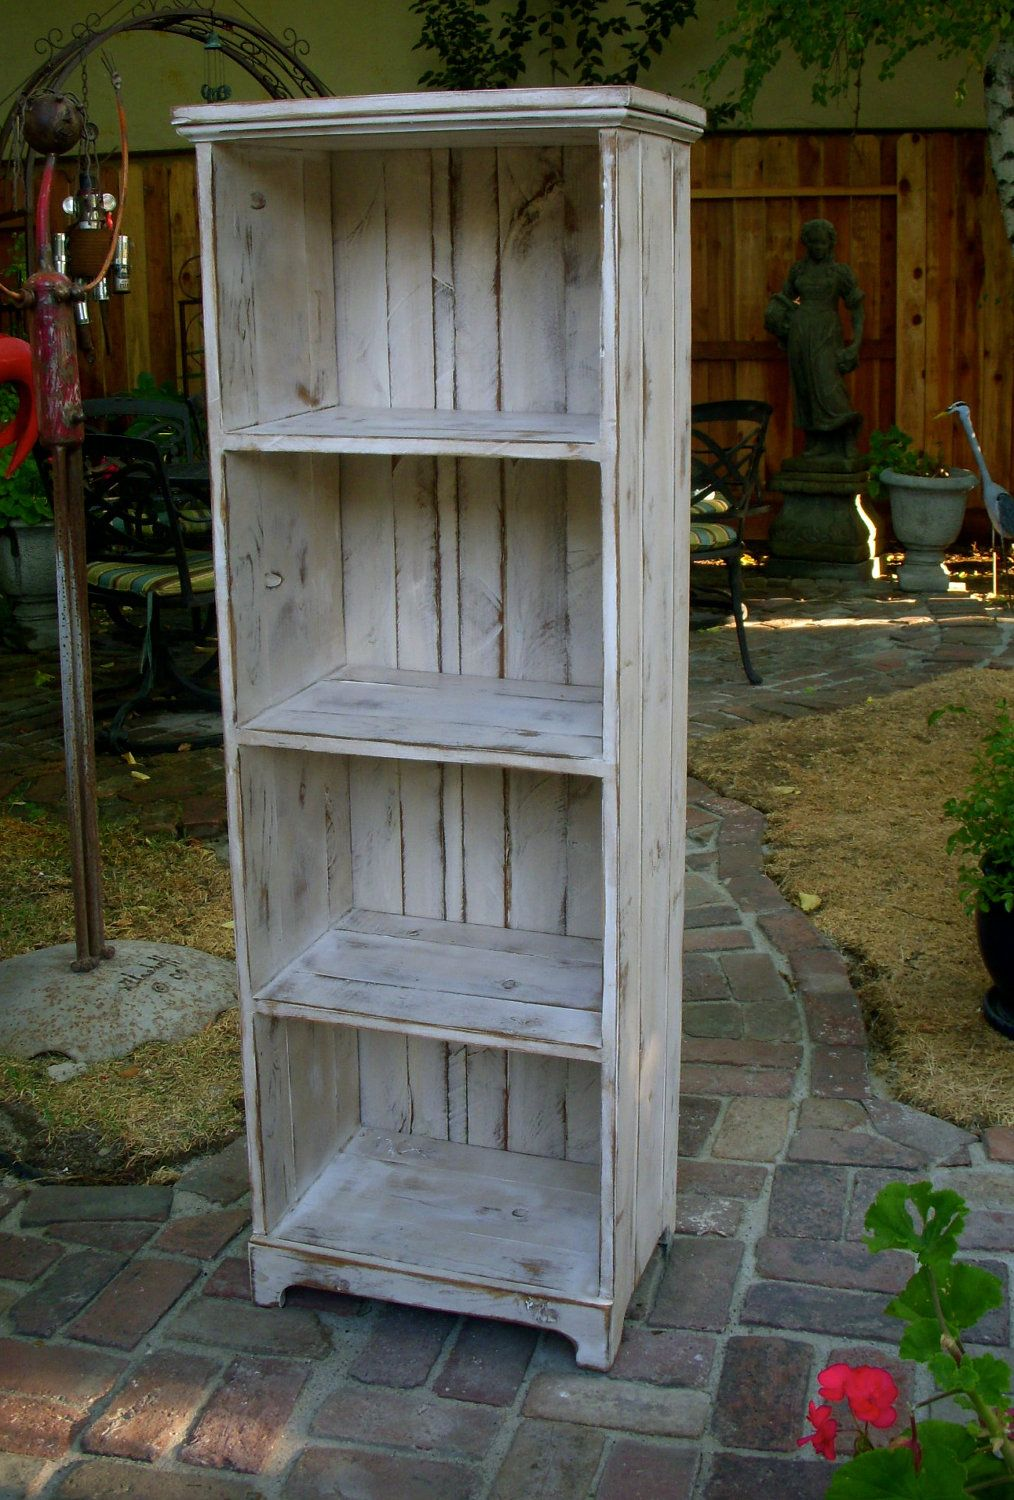 Beau Wooden Shelf   Rustic   Shabby Furniture   Storage Shelves   Solid Wood.  $600.00, Via Etsy.